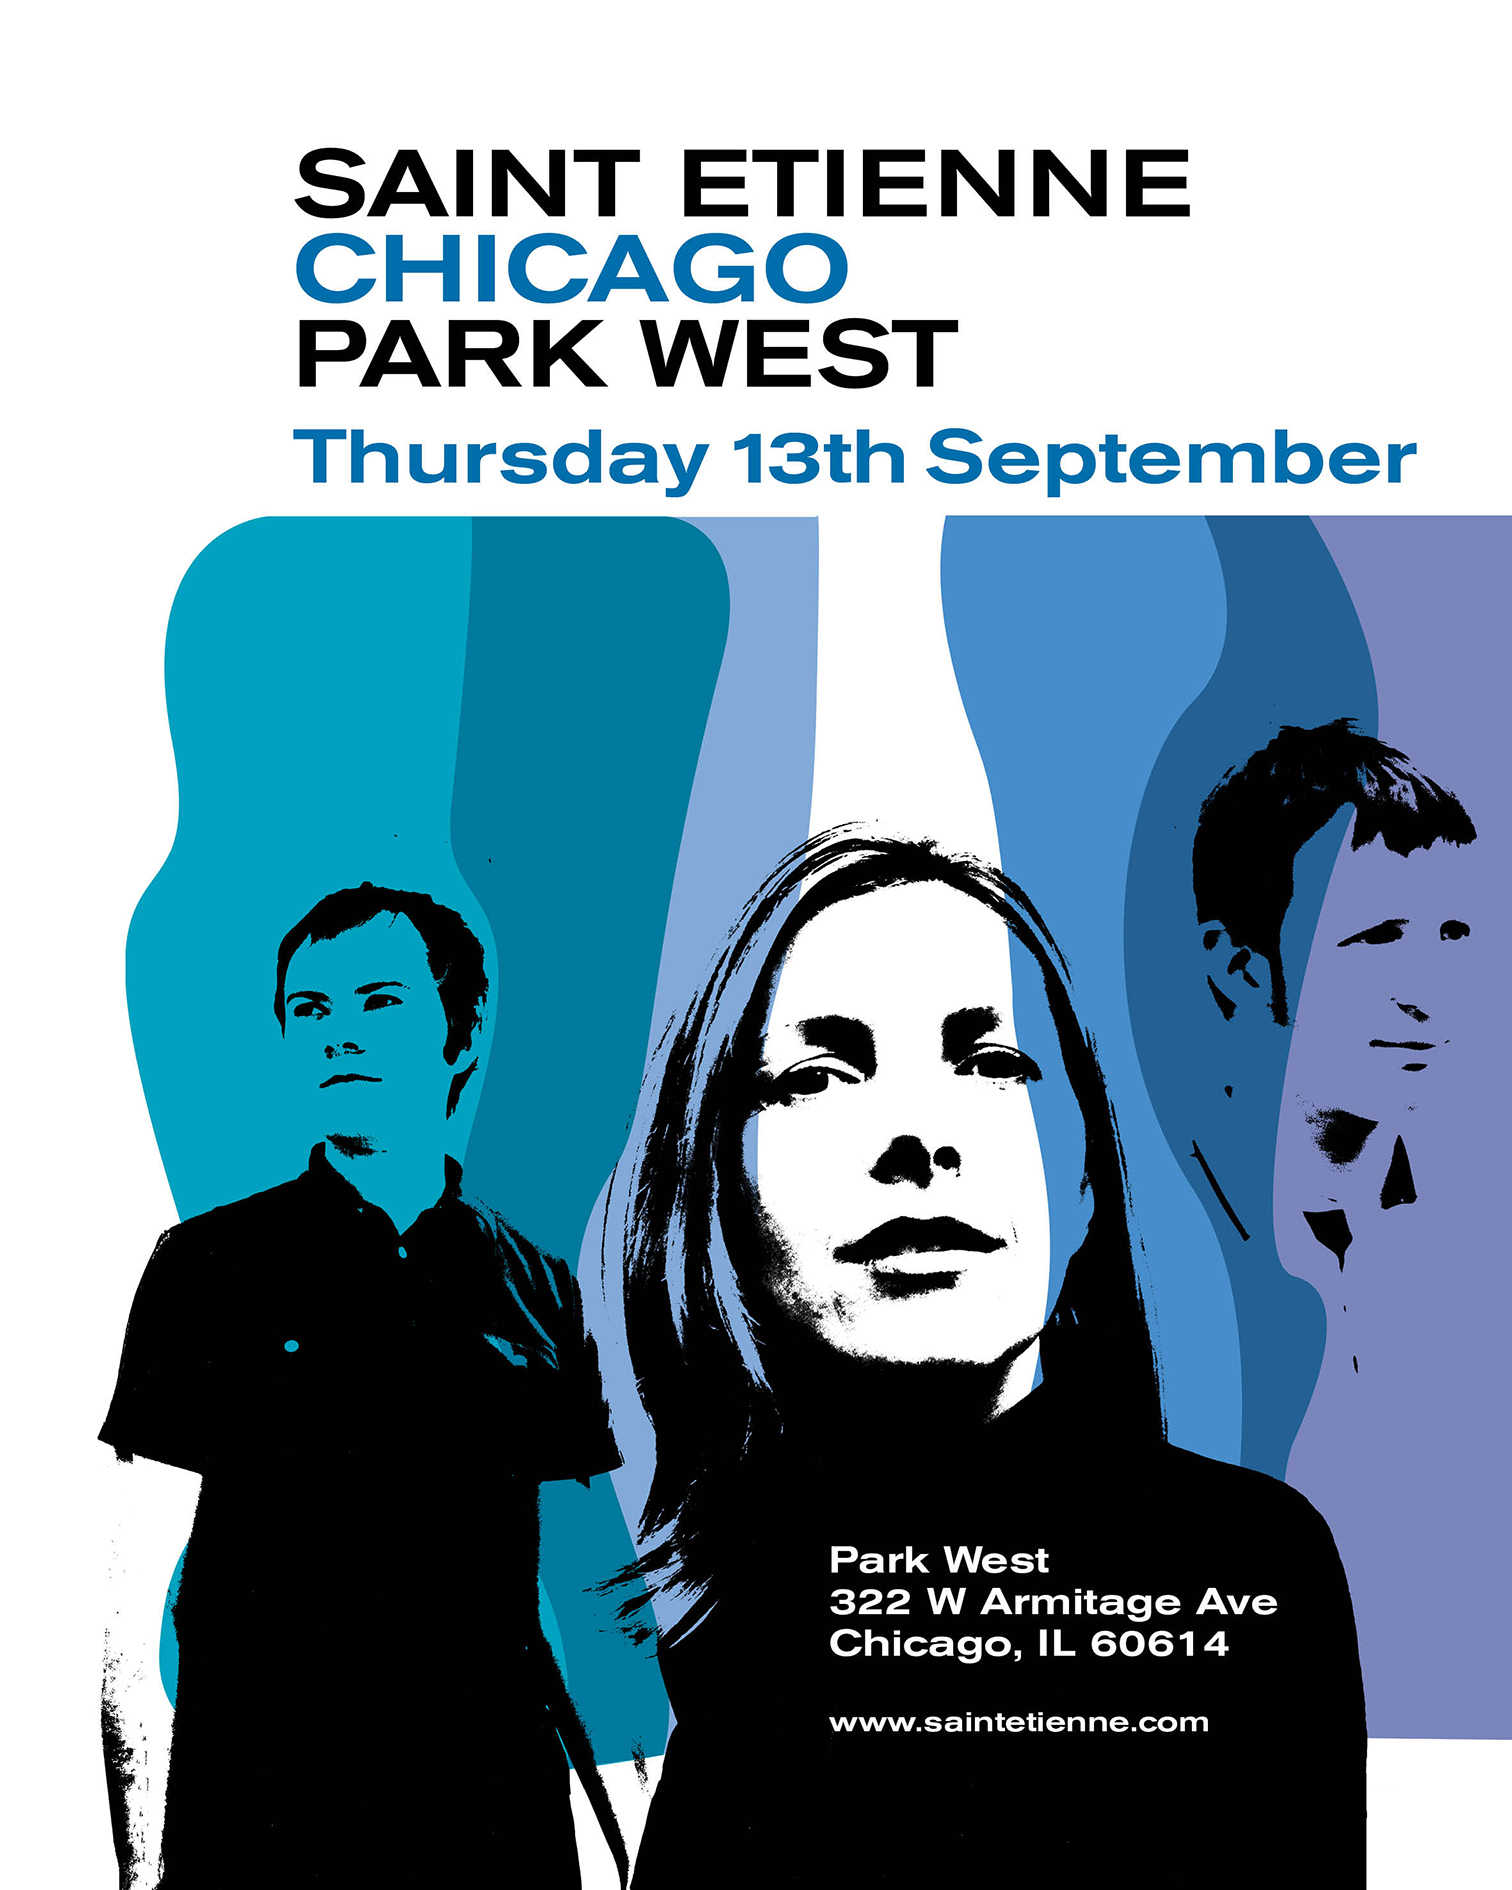 Saint Etienne celebrate 20 years of 'Good Humor'